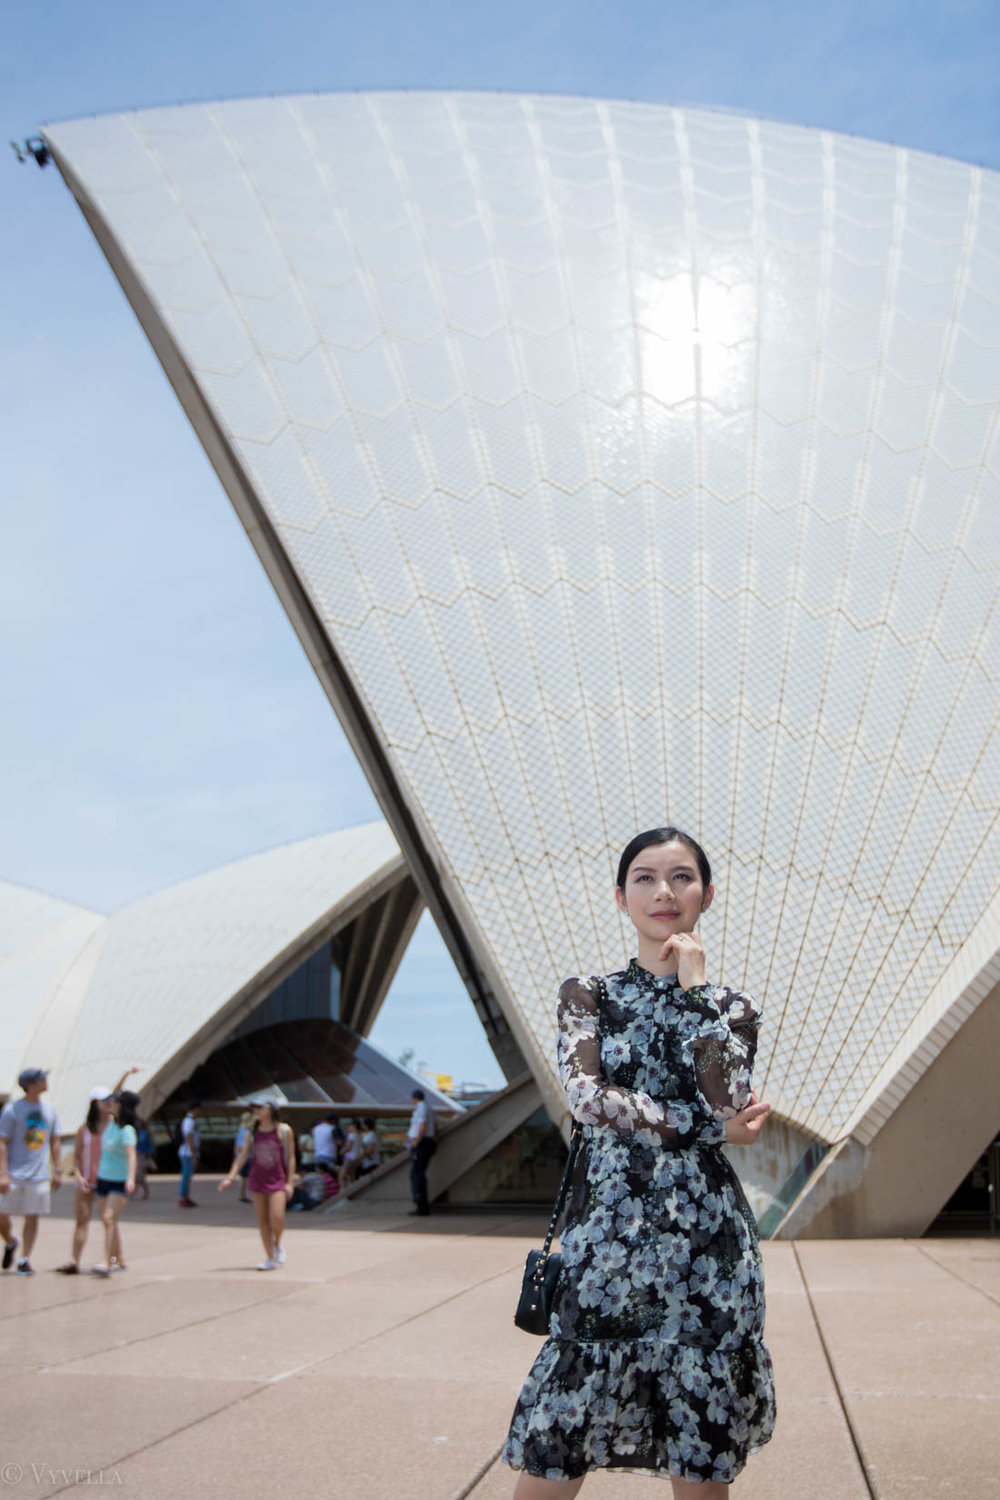 travel_sydney-opera-house_06.jpg